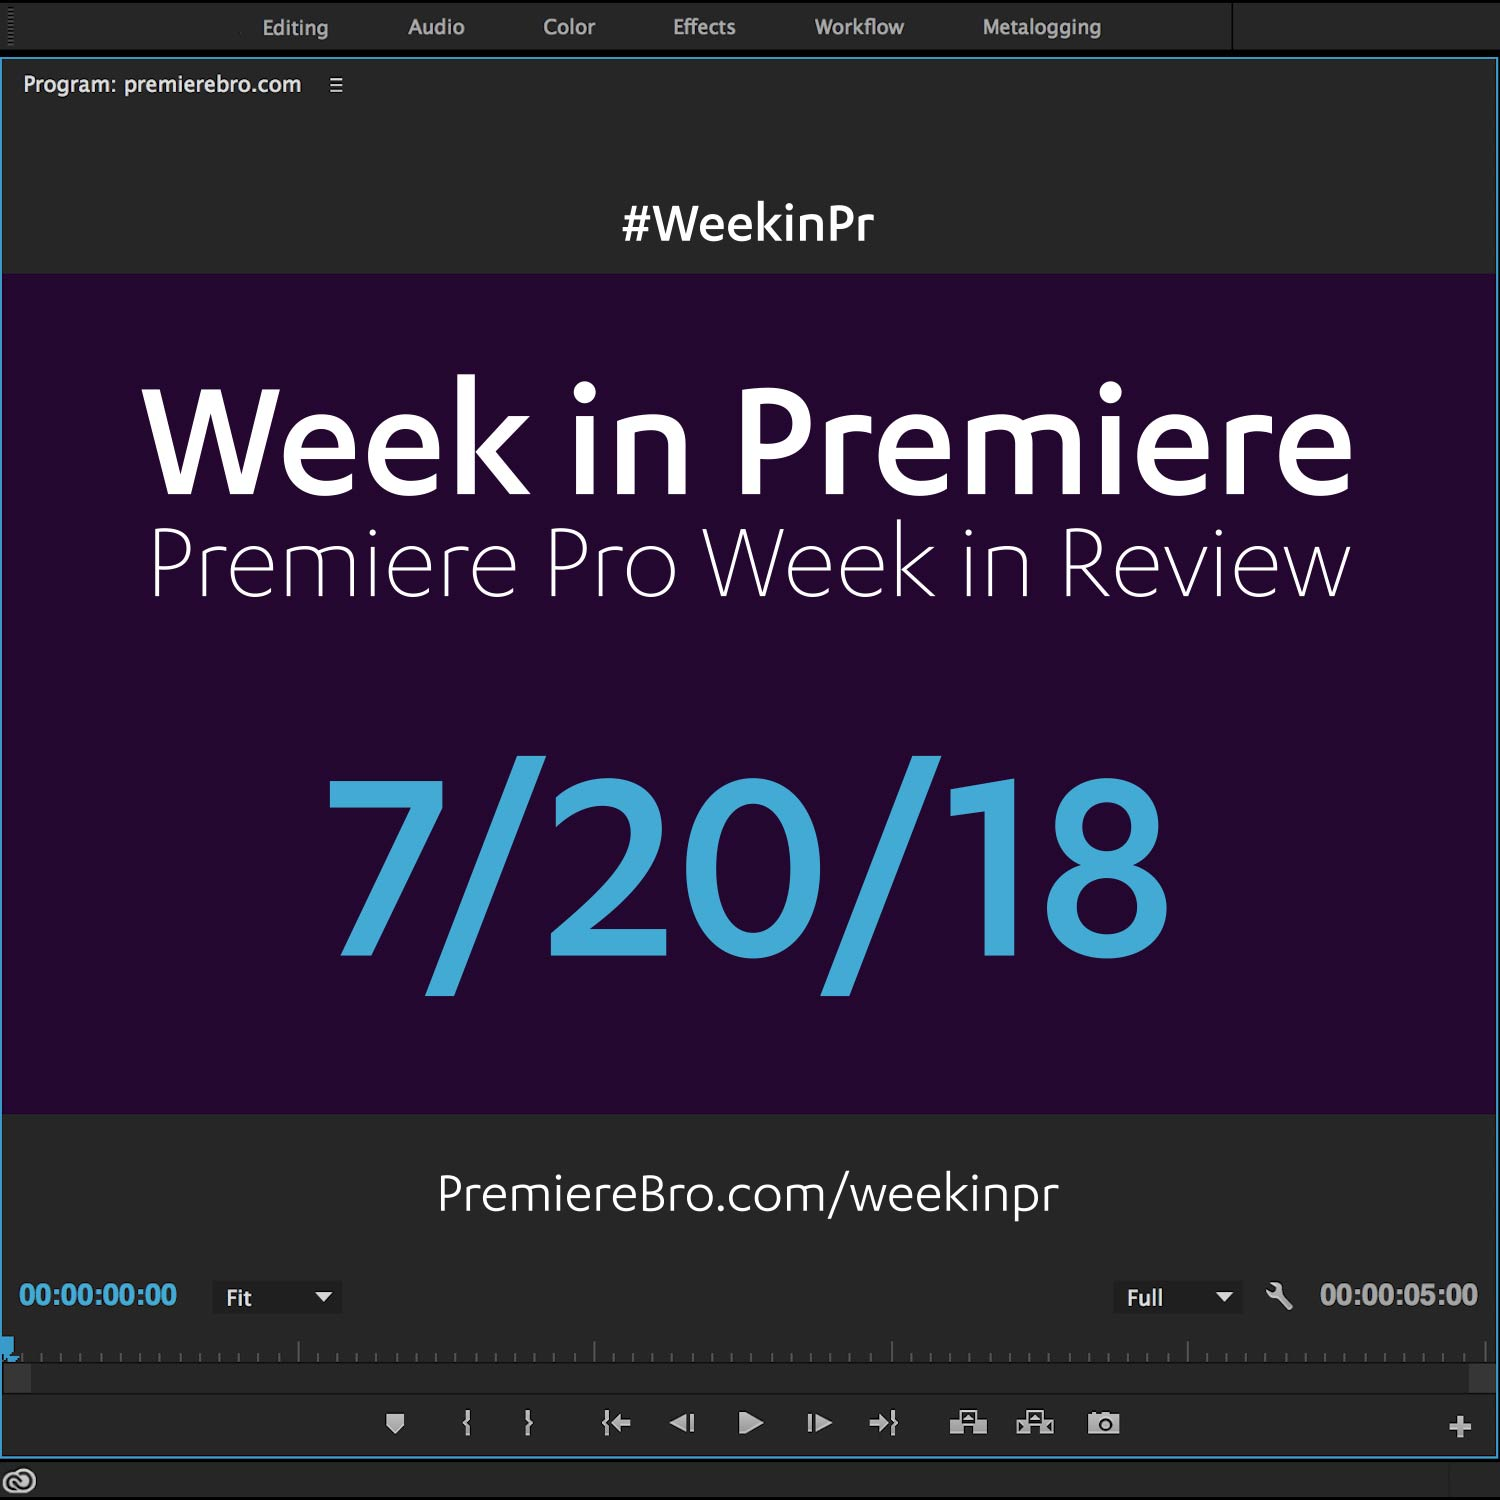 Week in Premiere 7/20/18 — Premiere Bro